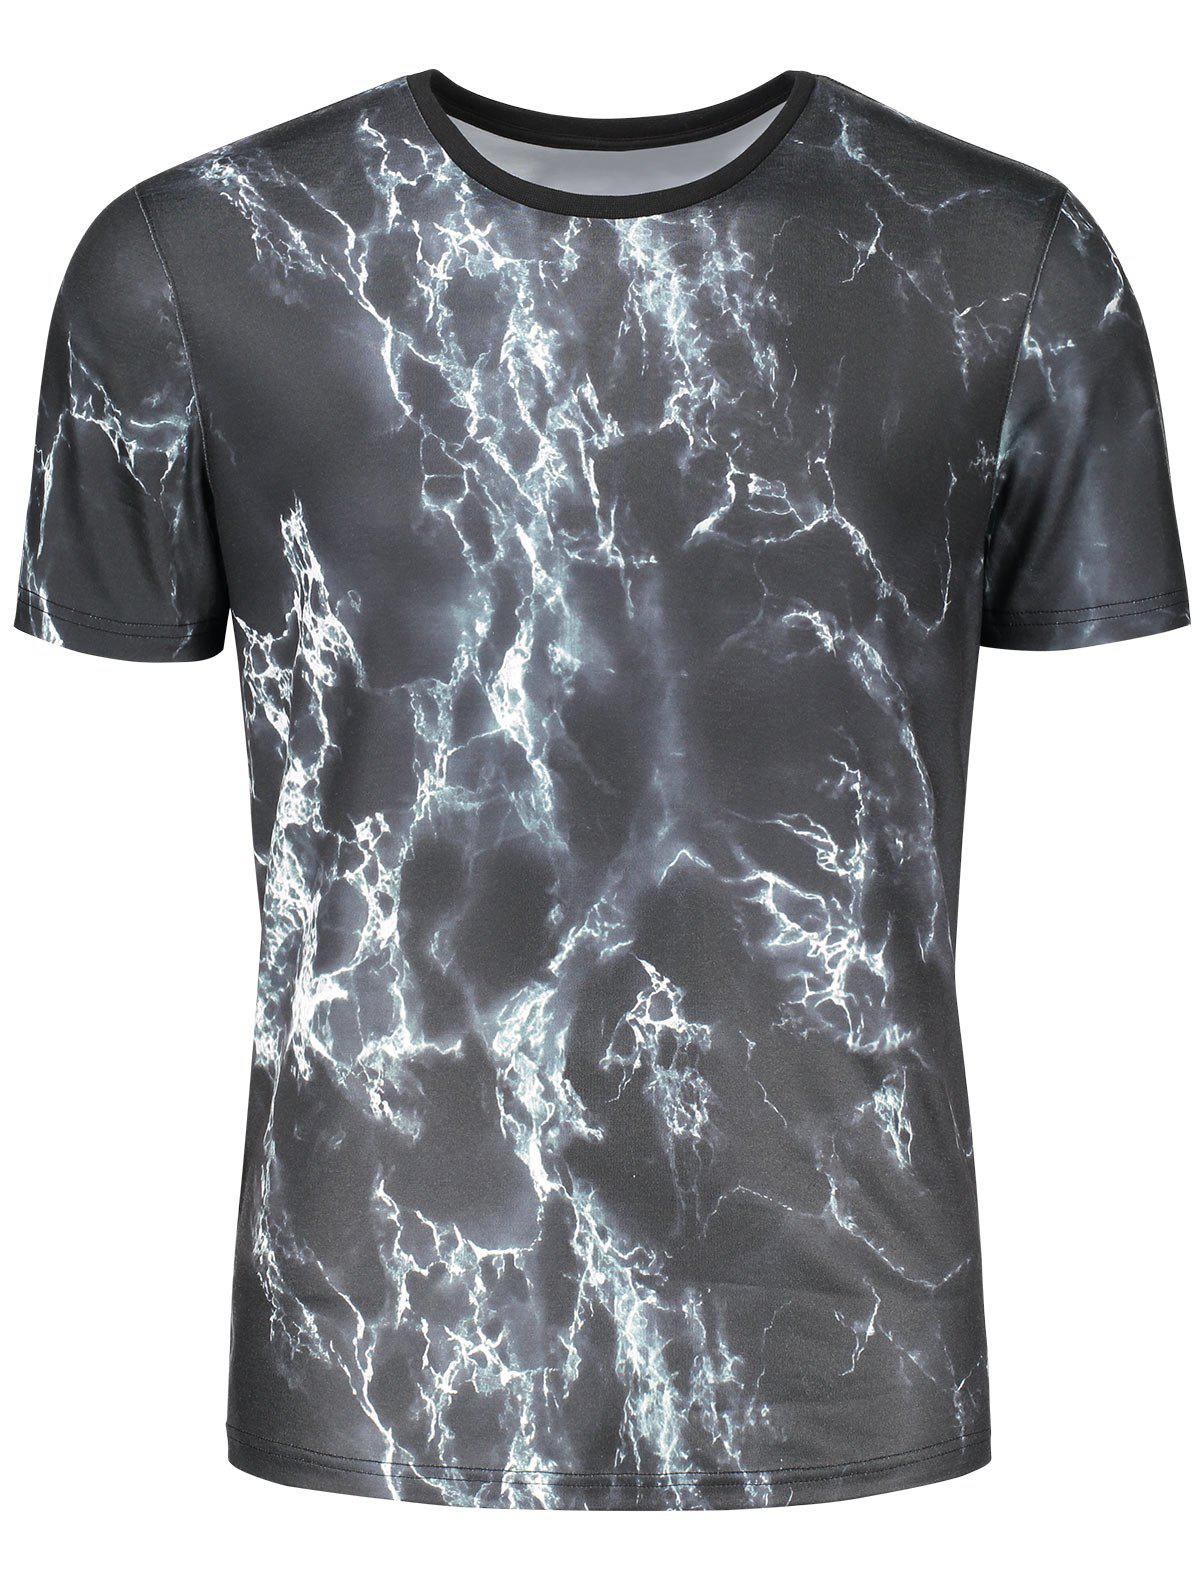 T-shirt à manches courtes 3D Lightning Print - multicolorcolore 2XL